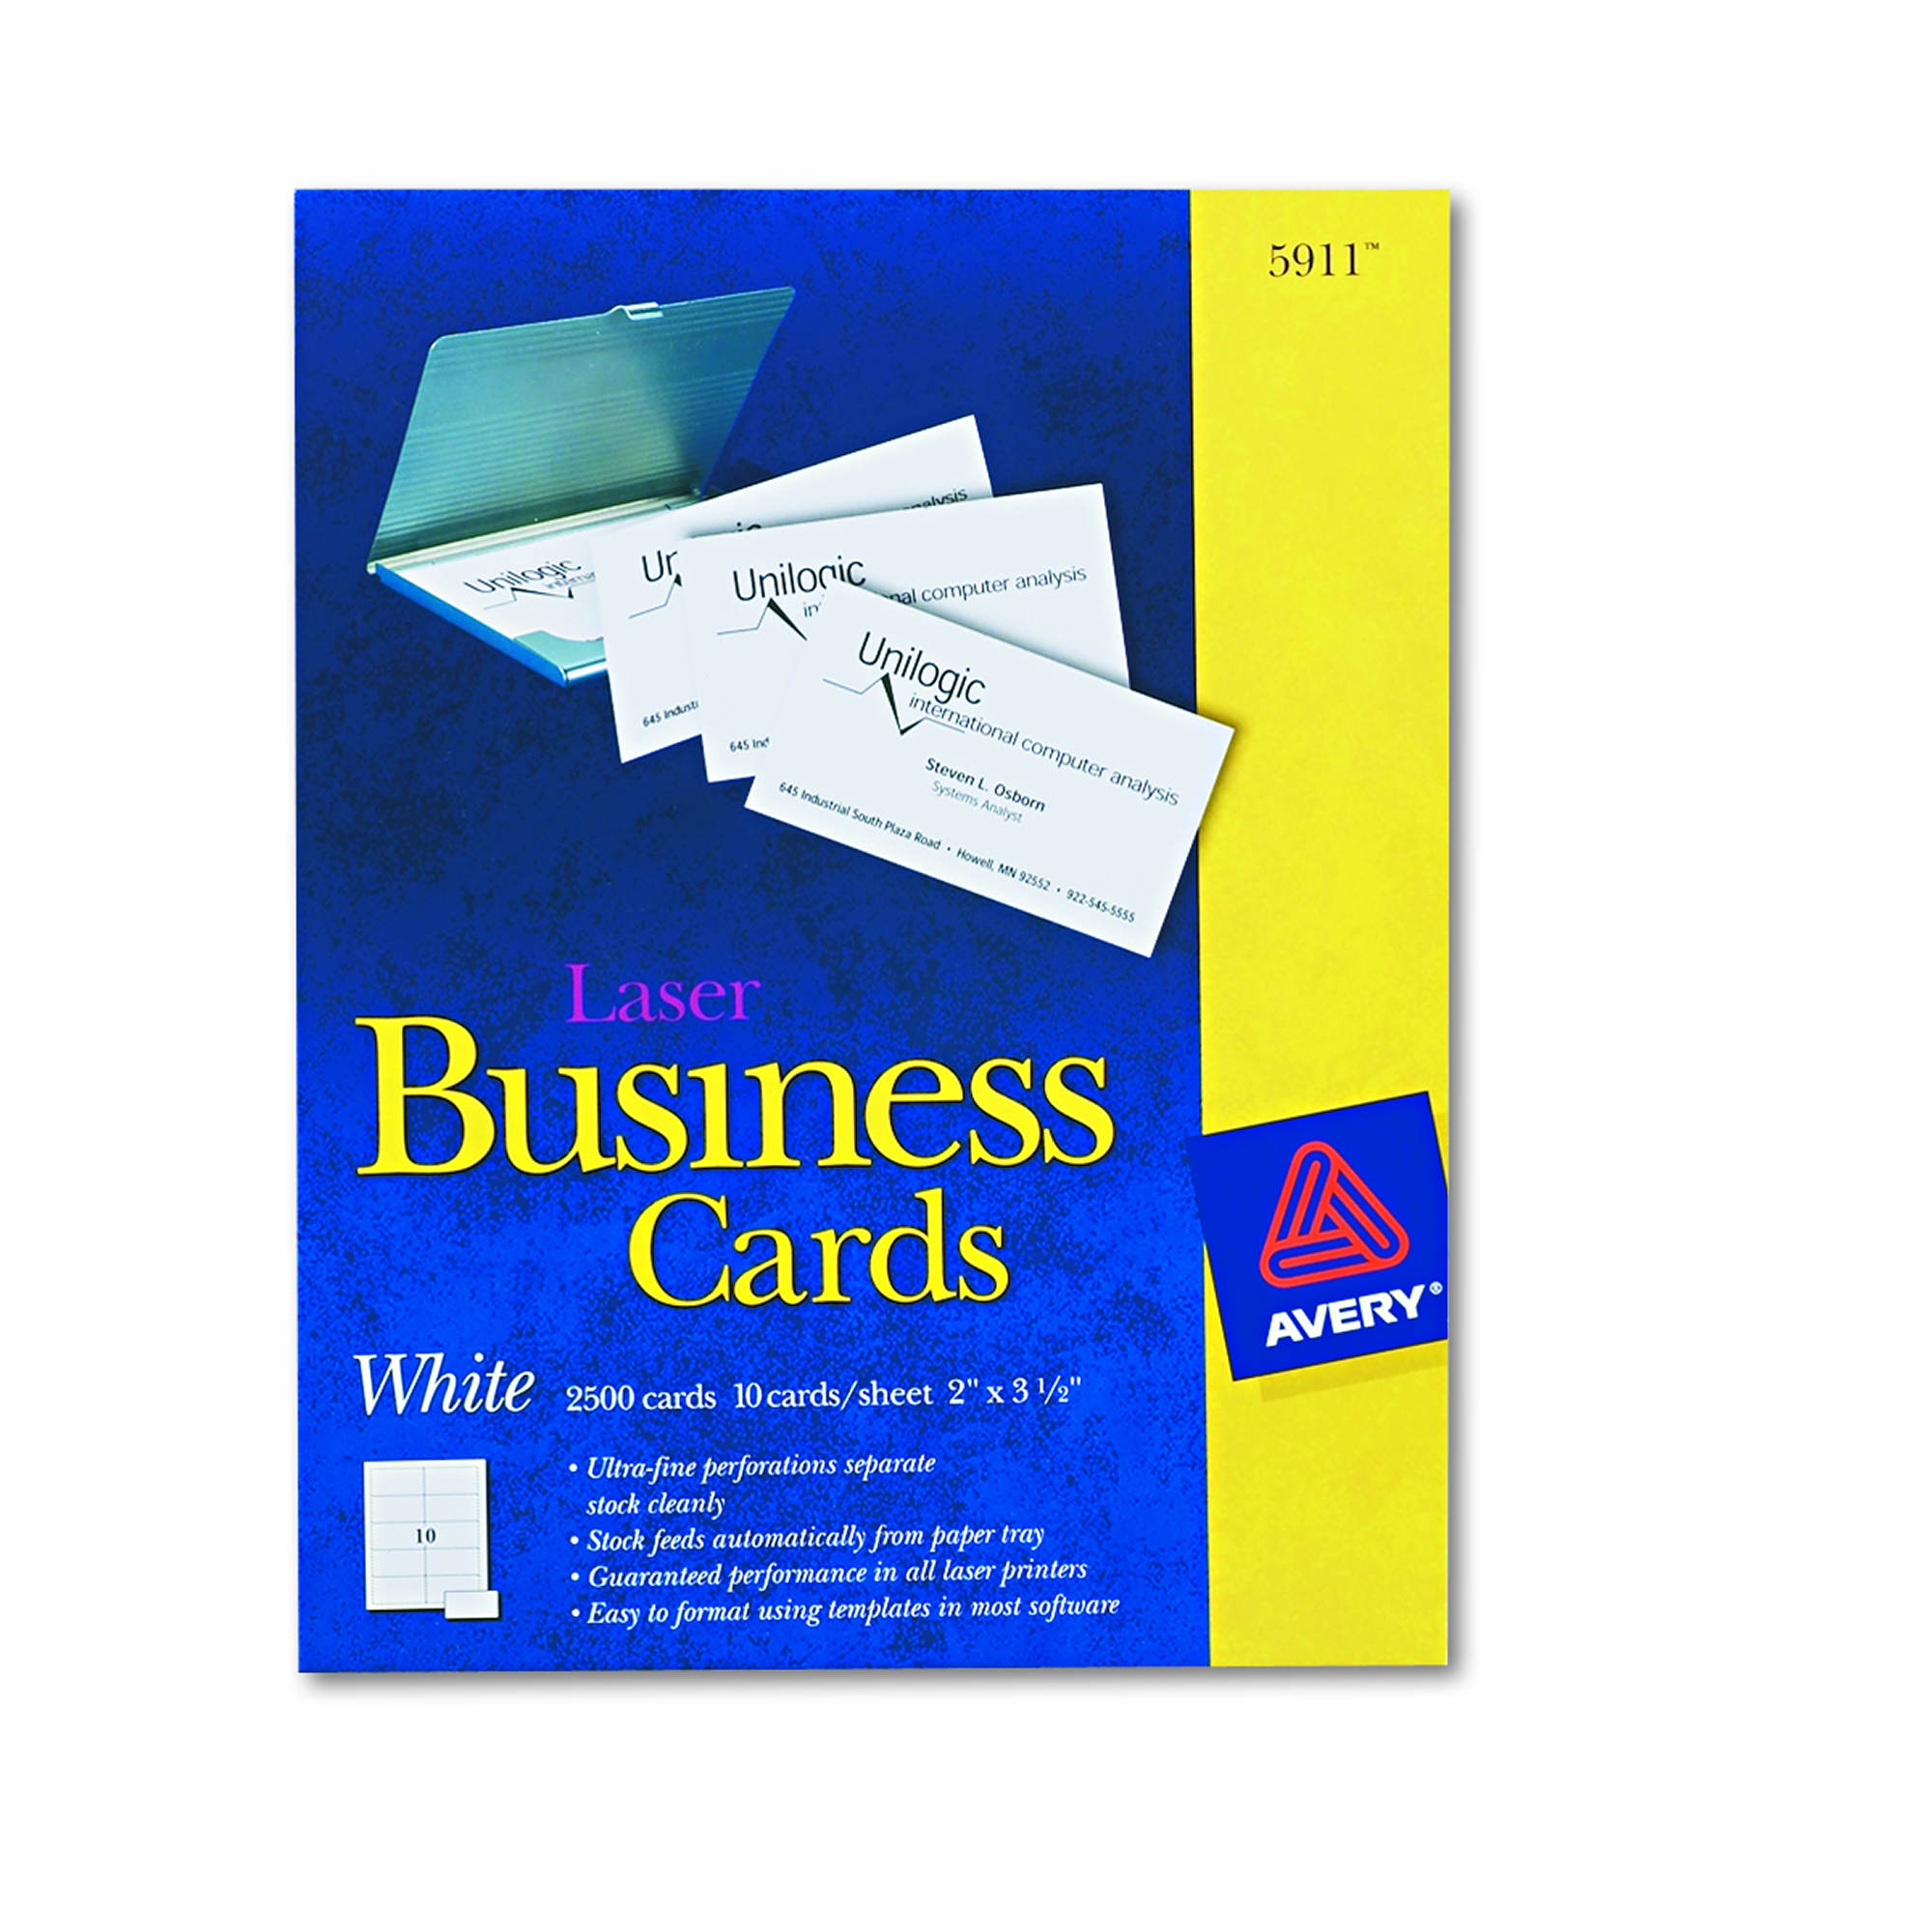 Avery laser business cards 2500 ct white bj39s for Avery laser business cards